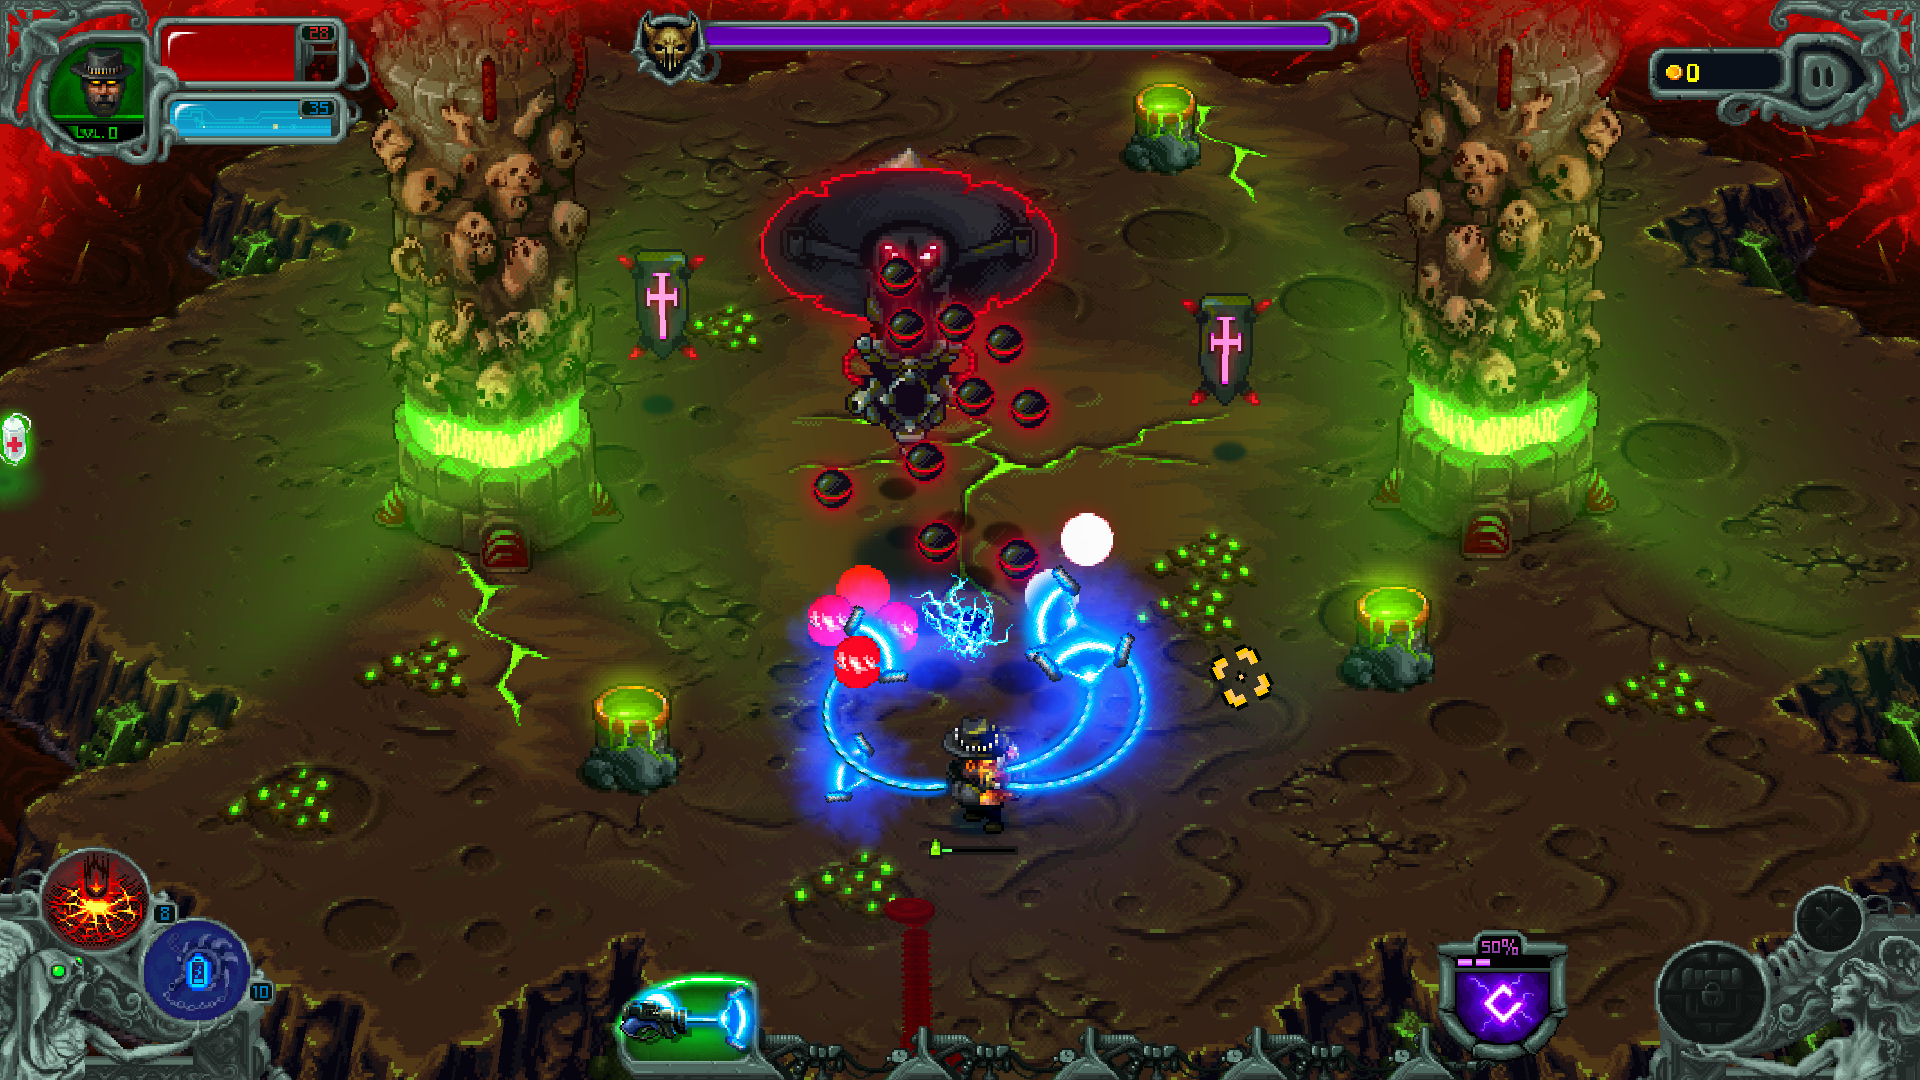 idracula_greenlight_screenshot_04